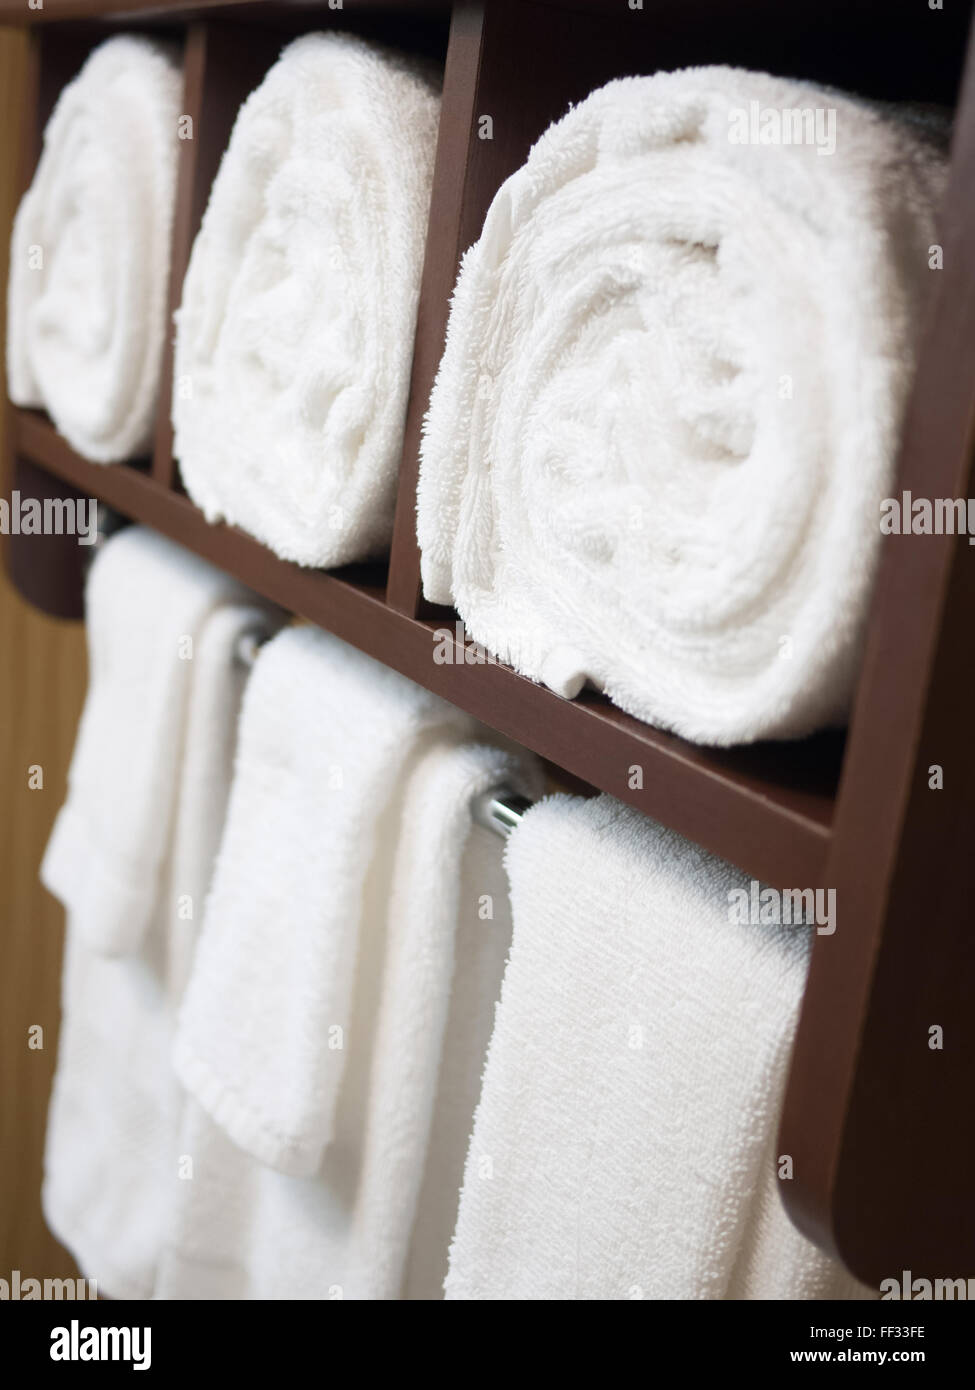 Bathroom Towel Rack With Rolled And Hanging Towels In A Hotel Bathroom